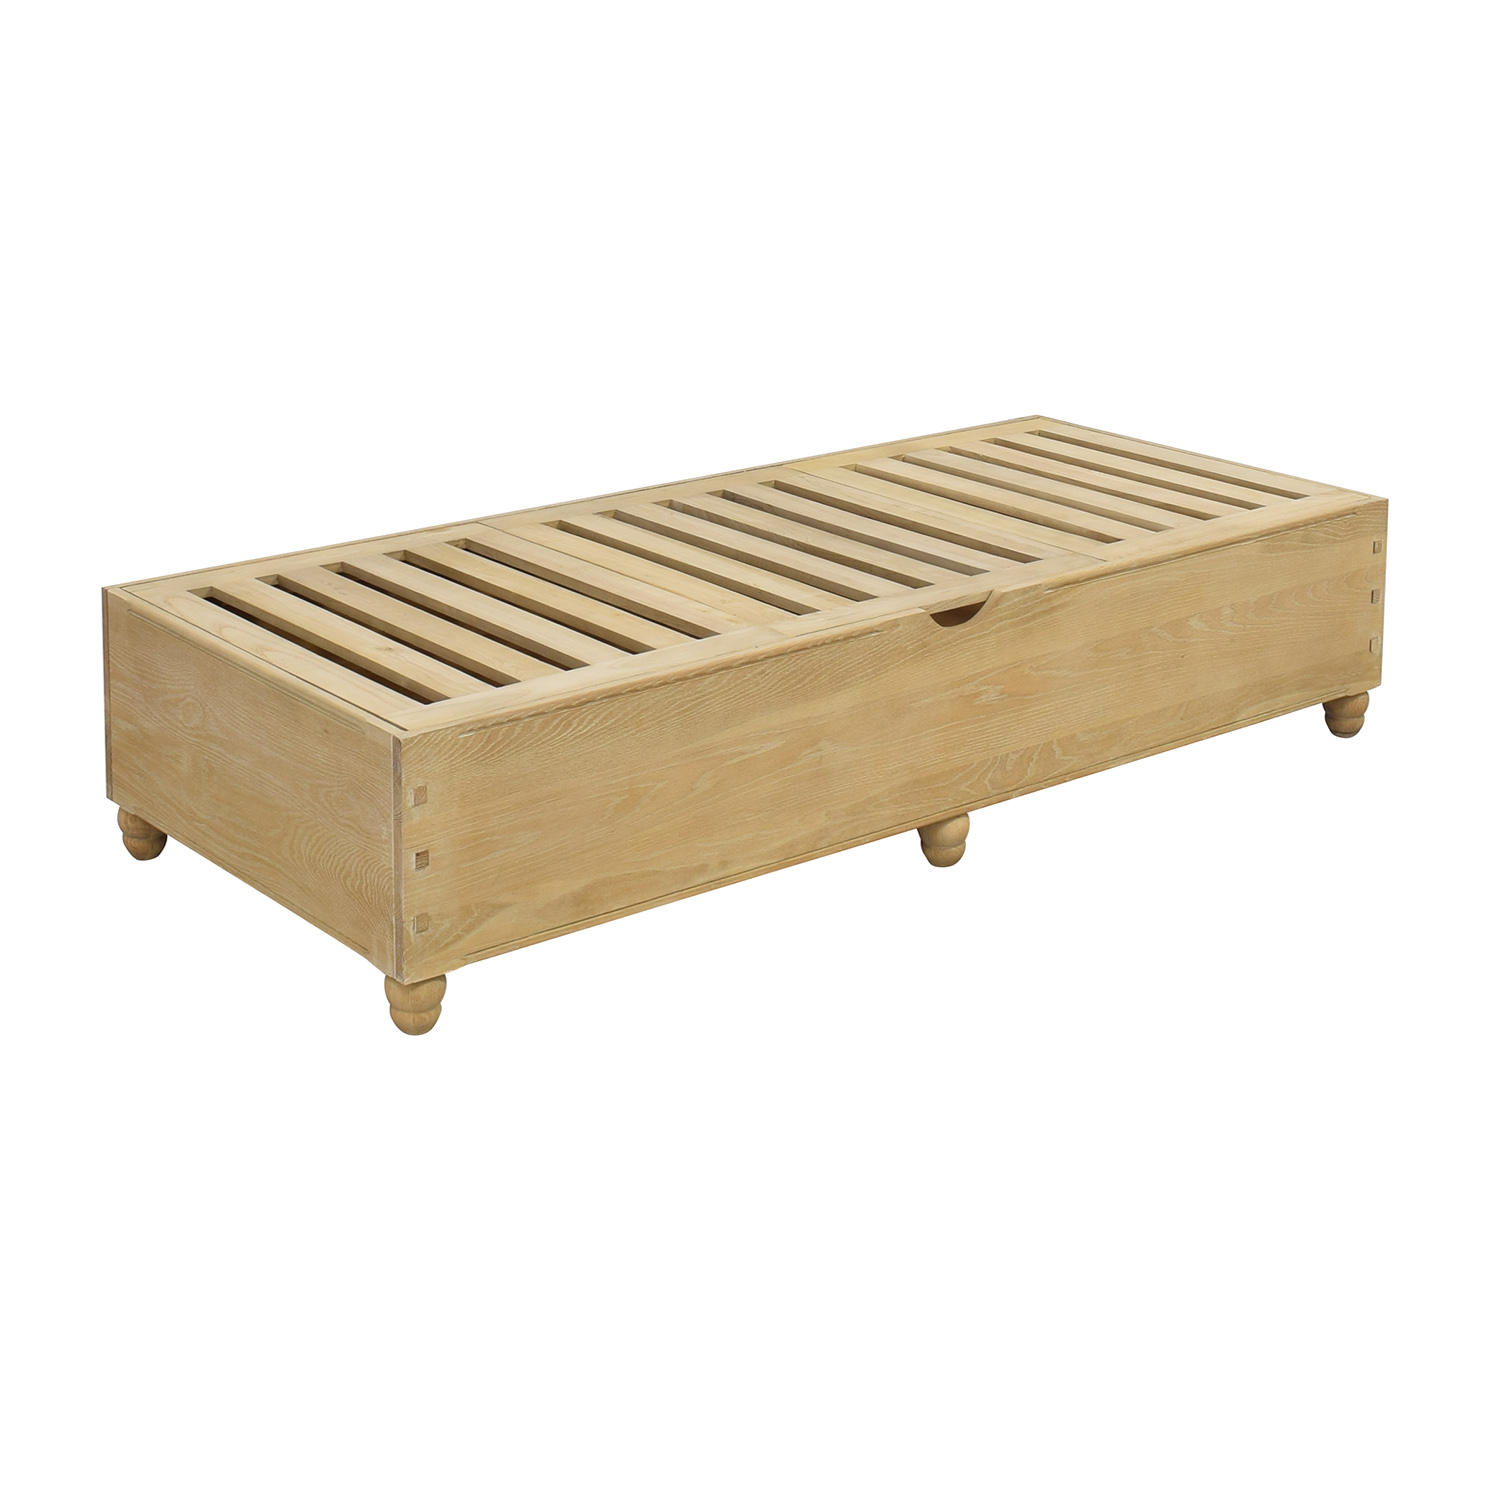 Loaf Loaf Jeepers Twin Daybed with Storage second hand